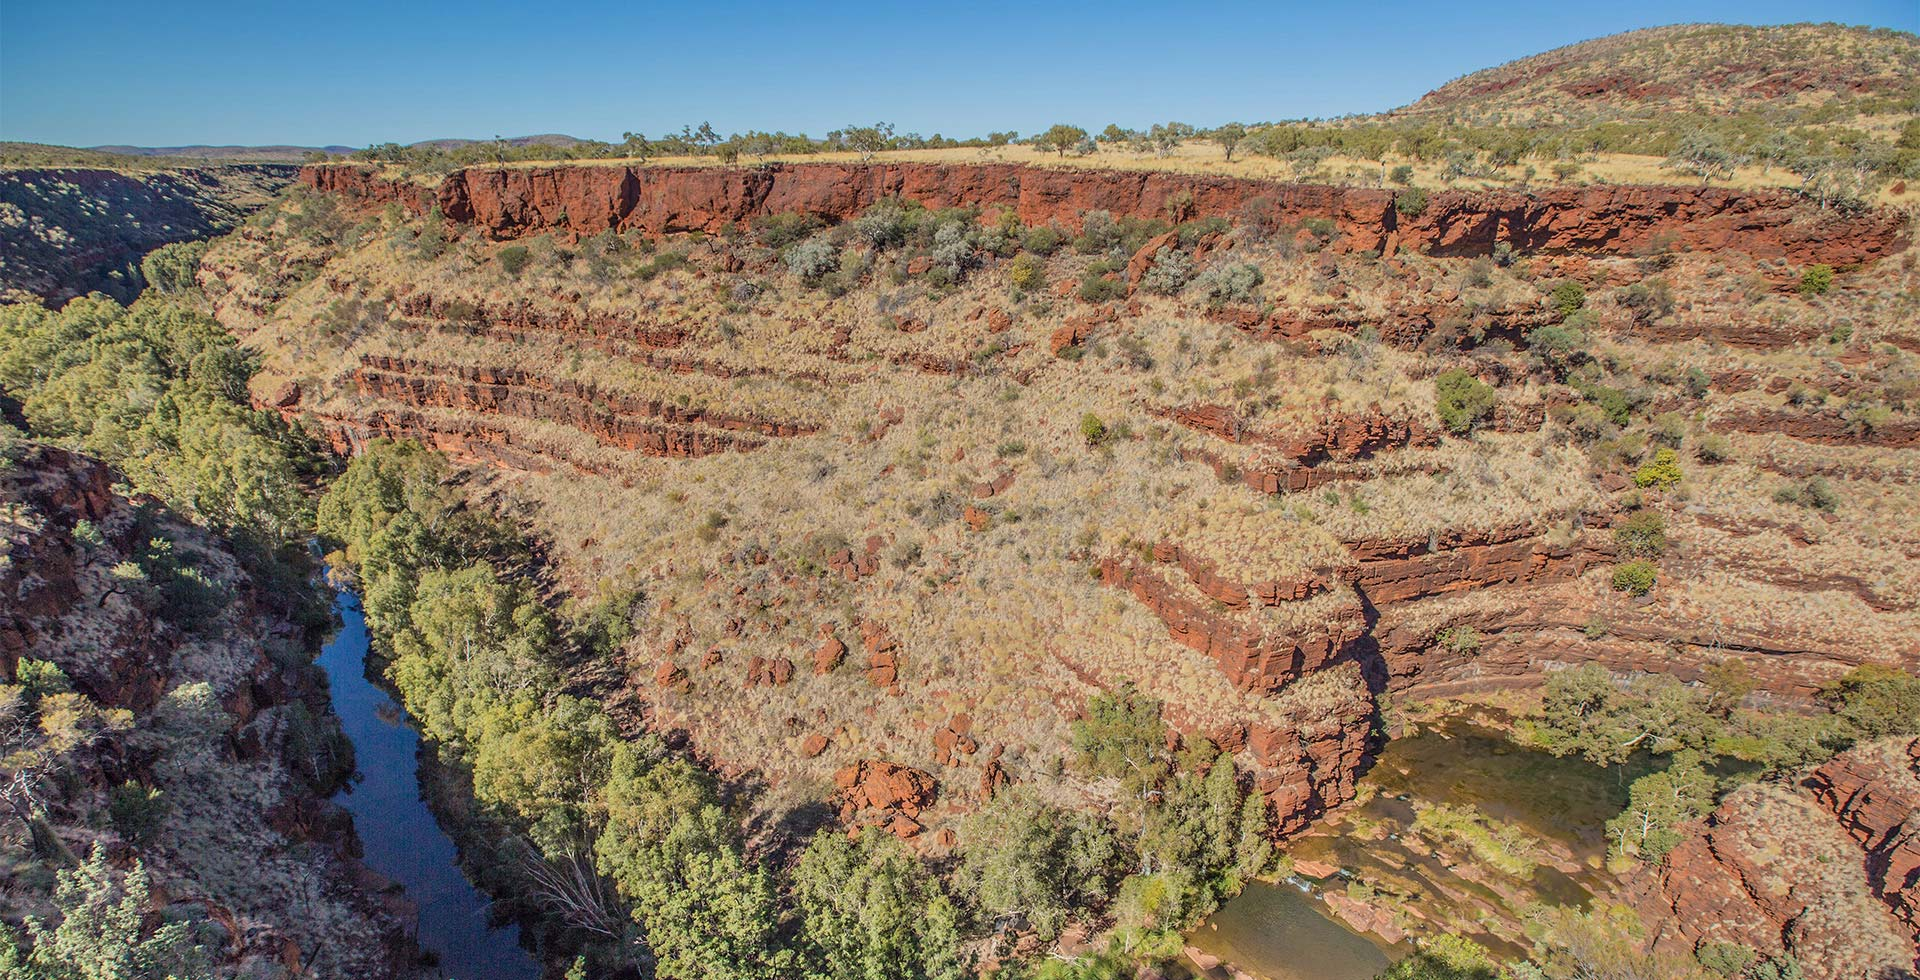 See the incredible Dales Gorge in Karijini near Port Hedland